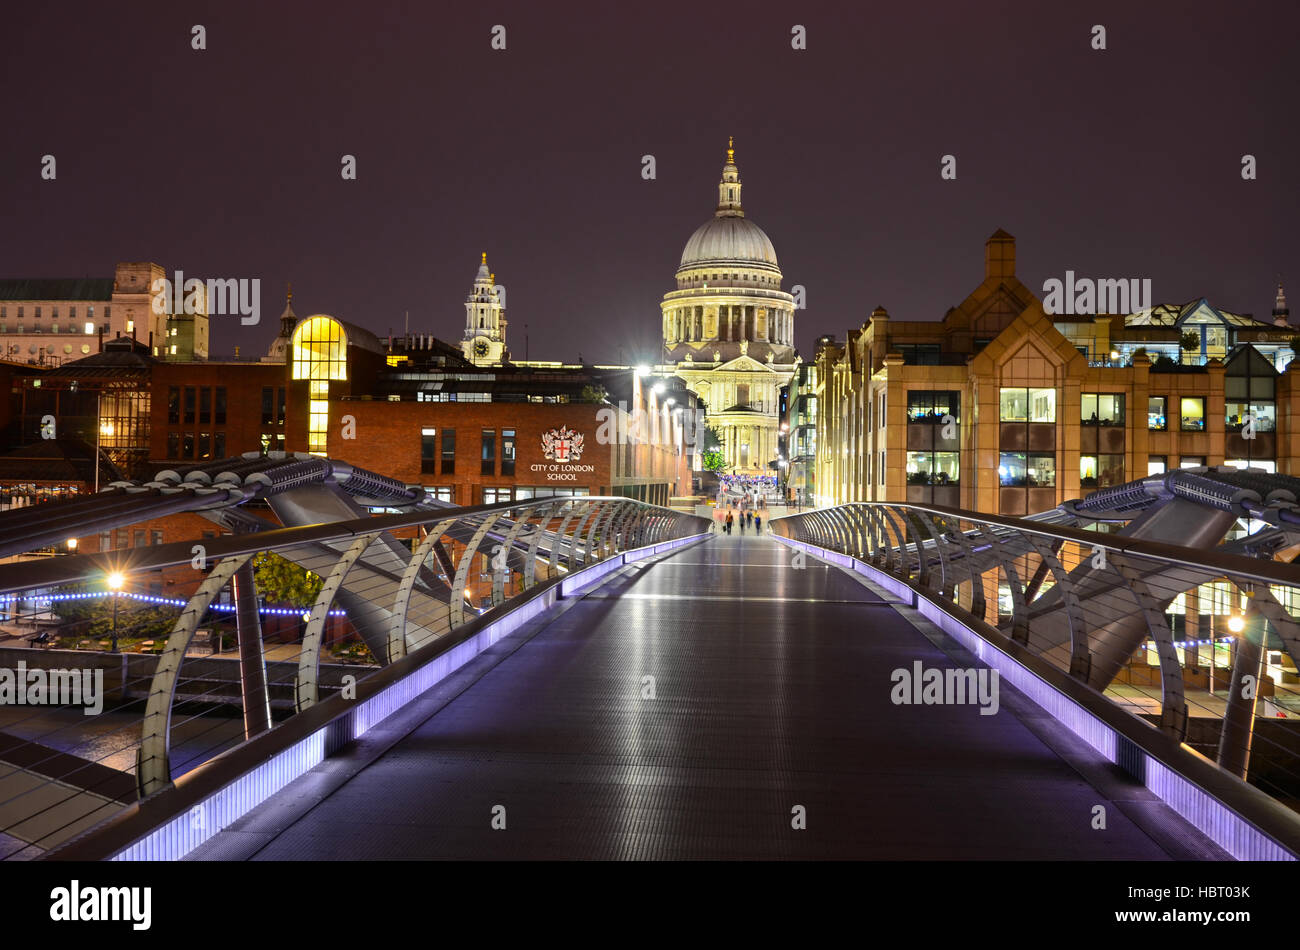 Millennium Bridge, Saint Paul's Cathedral in central London, uk - Stock Image